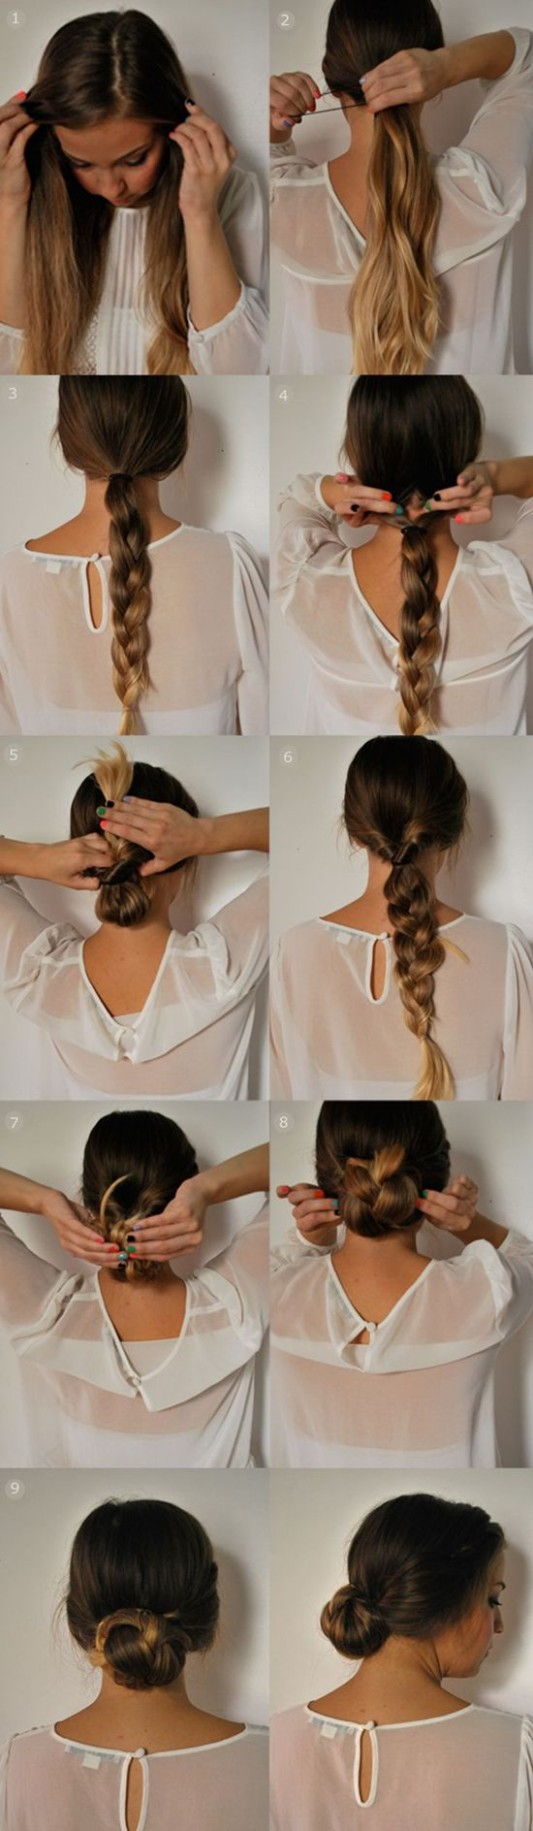 8 Easy 8 Minutes Hairstyles for women - Hairstyles Weekly